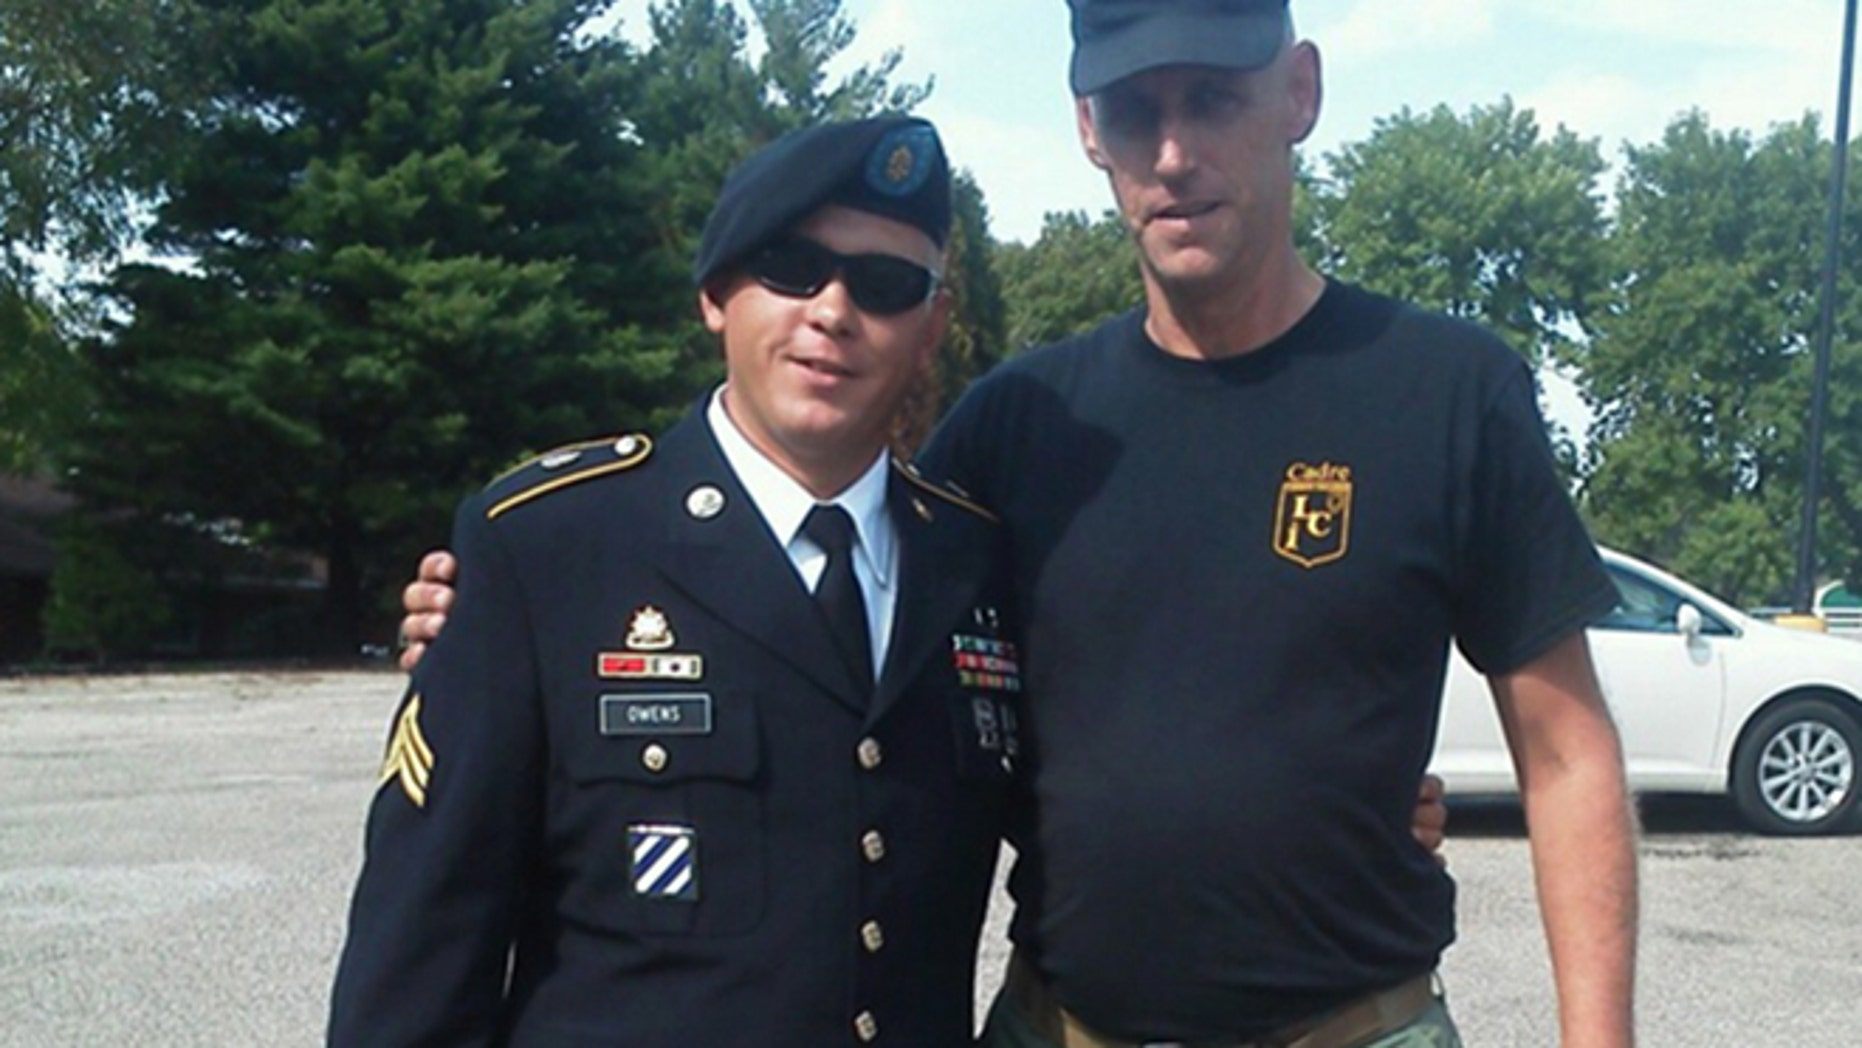 This undated family photo provided by Glen Welton shows U.S. Army Sgt. Tim Owens, left, of Effingham, Ill., with his cousin Glen Welton. Owens was one of three people killed by a shooter at Fort Hood, Texas on Wednesday, April 2, 2014. The shooter, identified as Ivan Lopez, also wounded 16 others before shooting himself, according to authorities. (AP Photo/Courtesy of the Owens family)